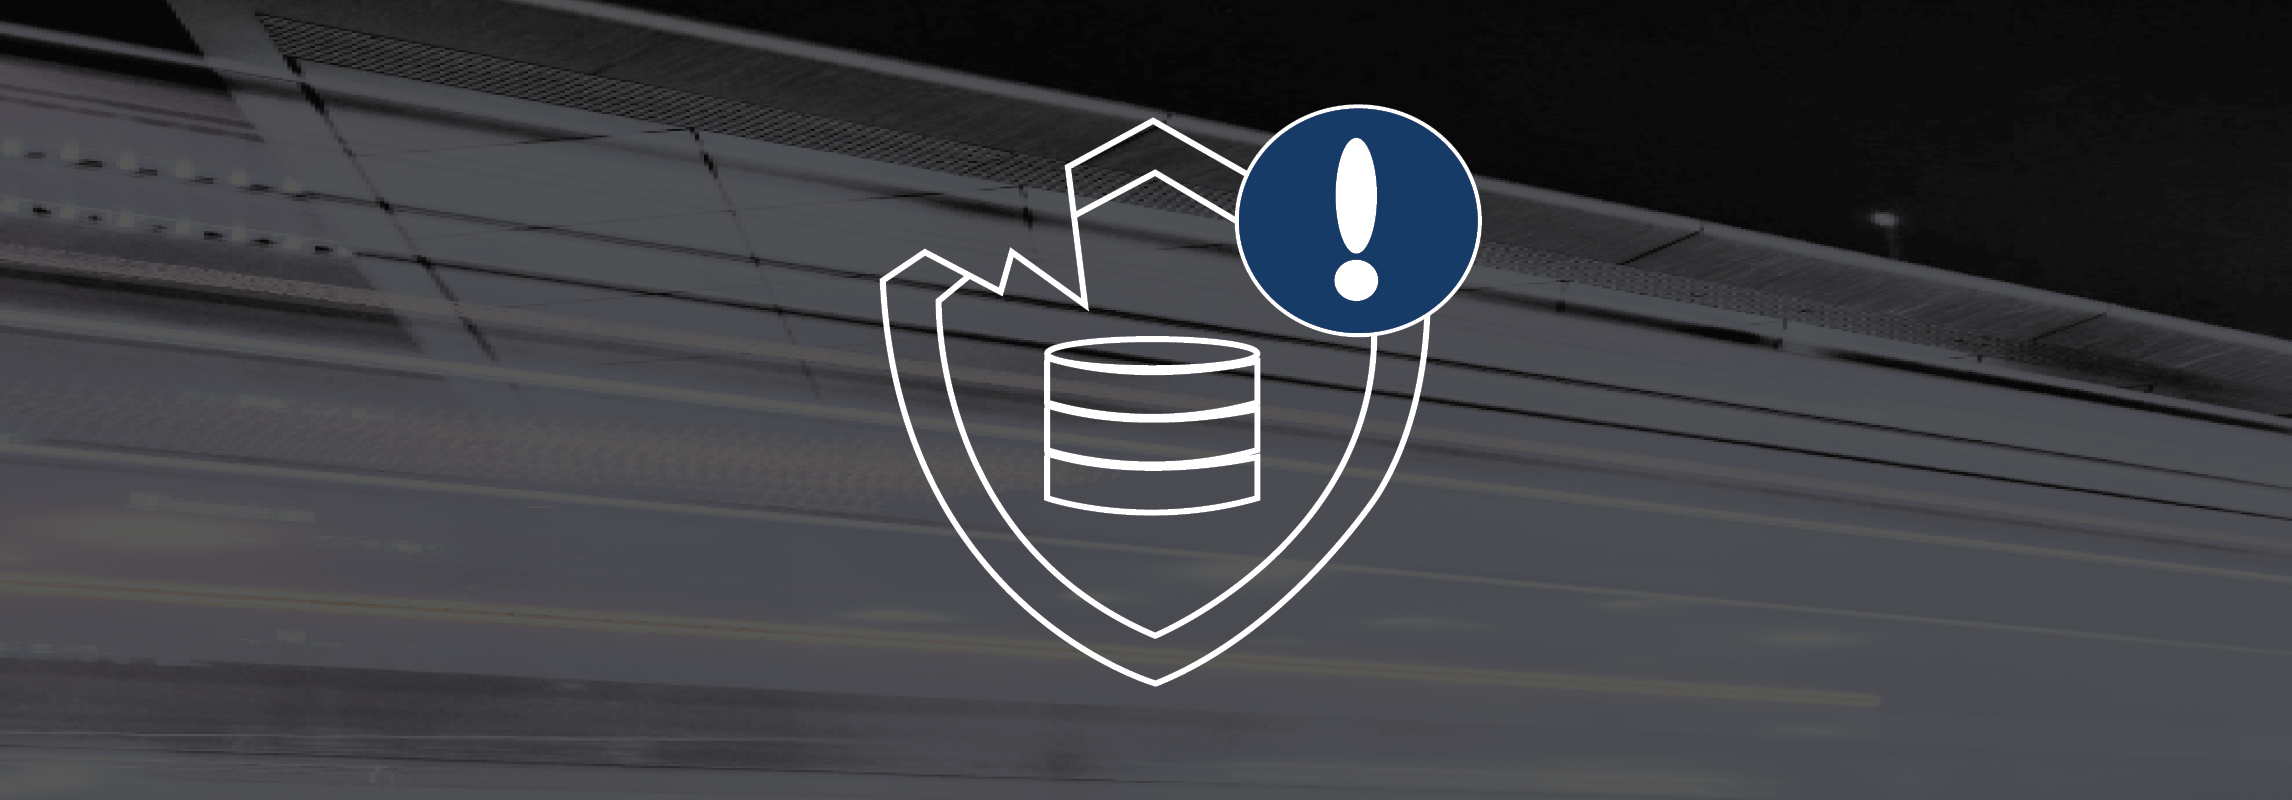 Light strip with icon of a damaged server in the foreground